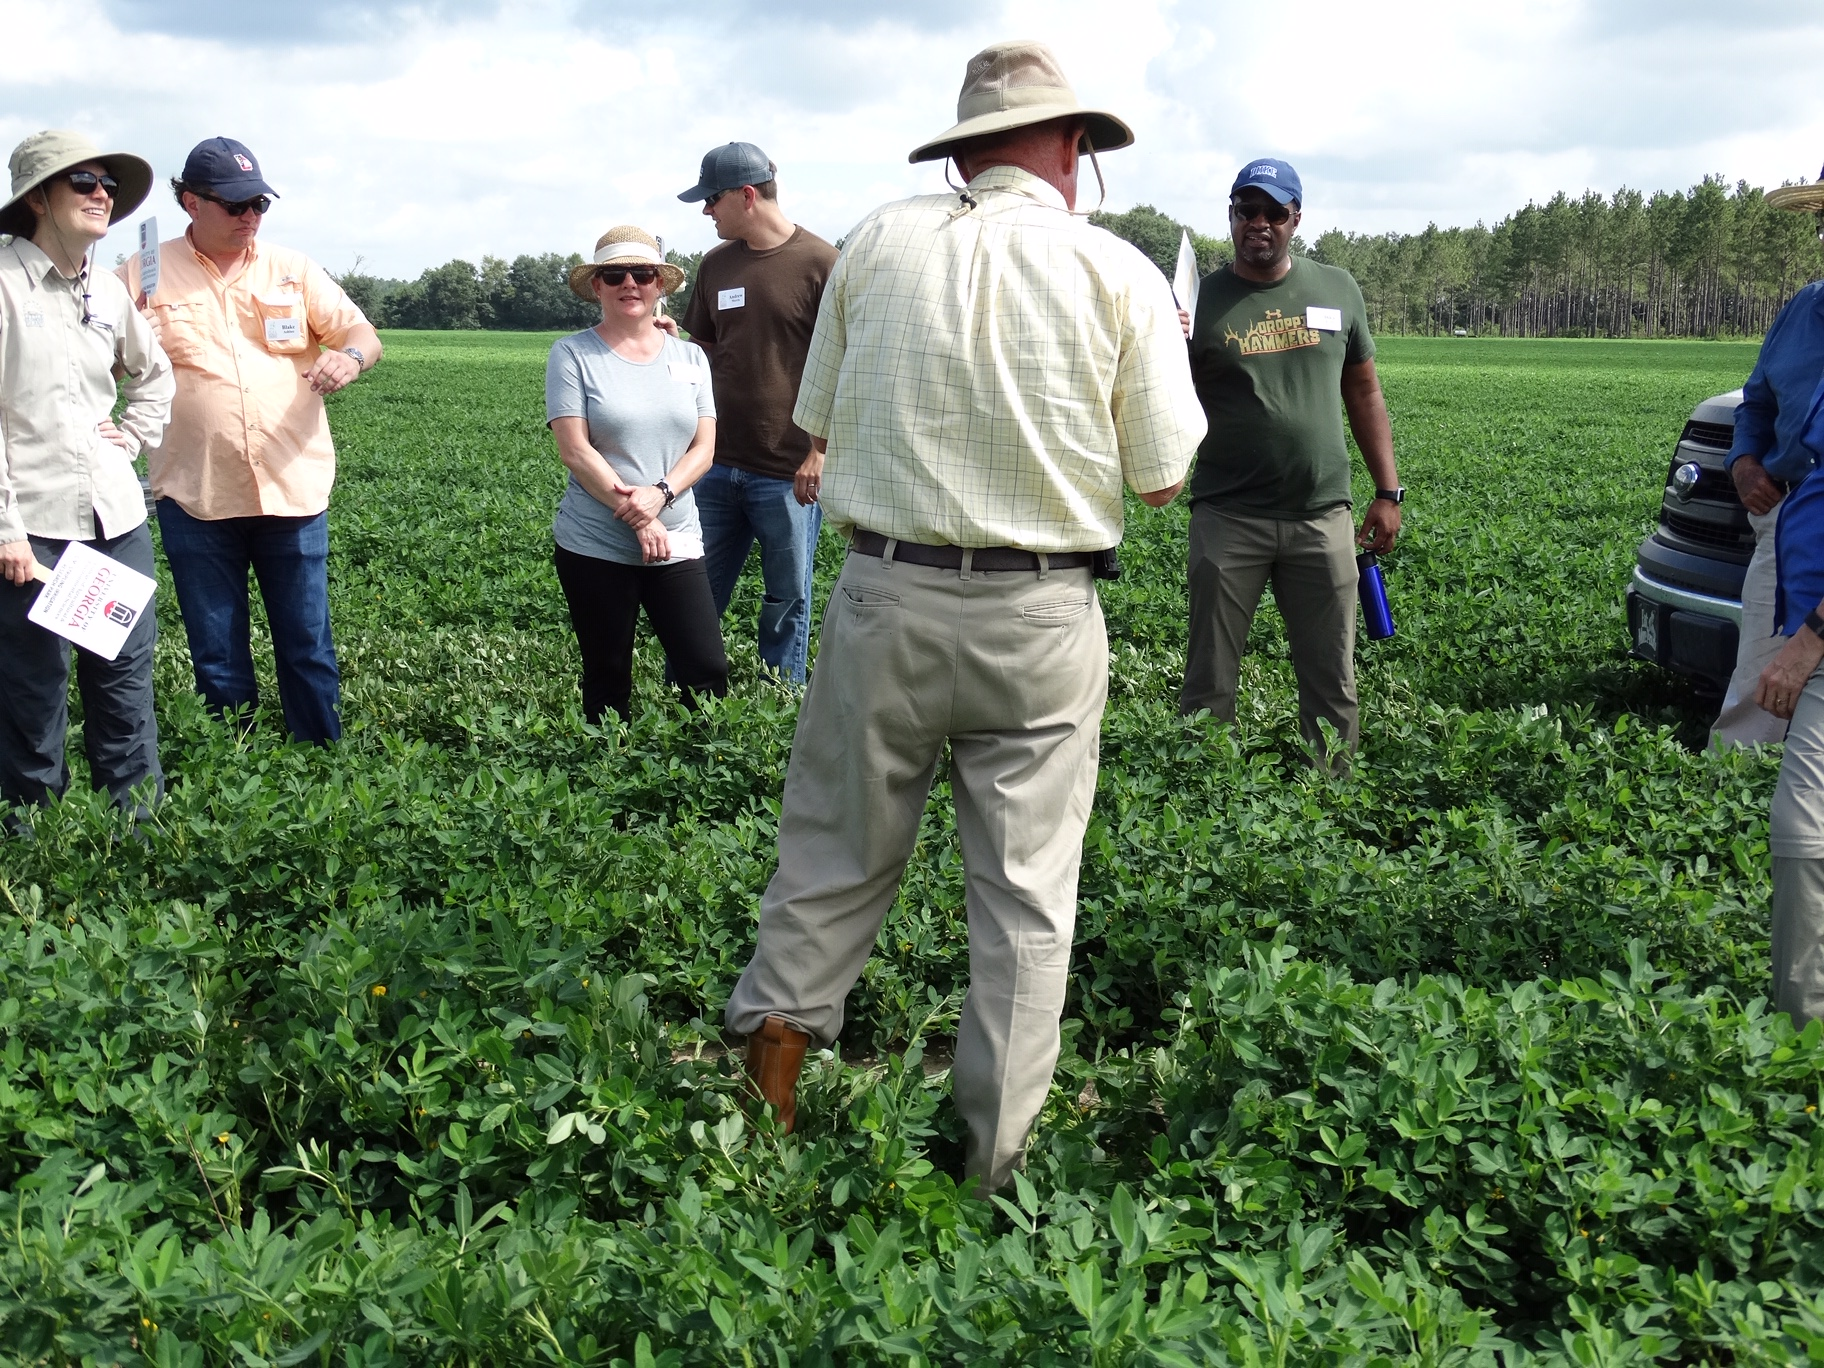 Local farmer Murray Campbell discusses peanut production on a farm tour with IGEL participants.